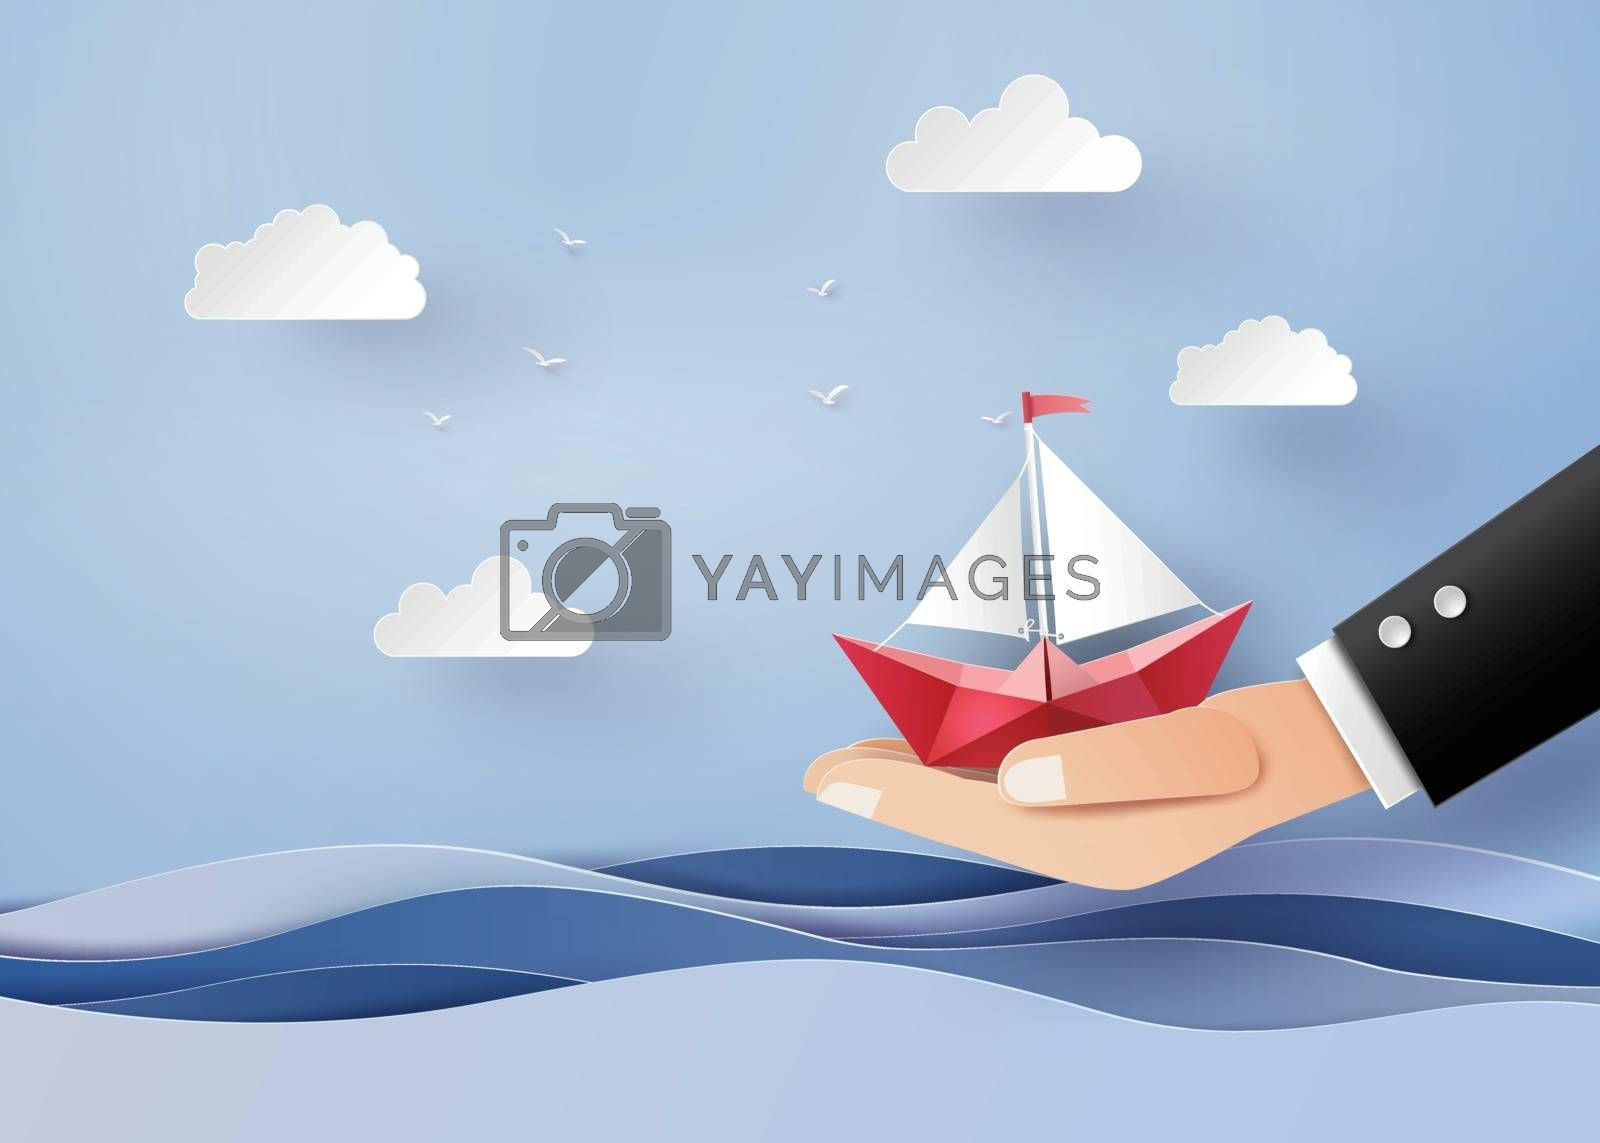 bussiness concept of freedom and believe ,origami made paper sailing boat on hand. The illustrations do the same paper art and craft style